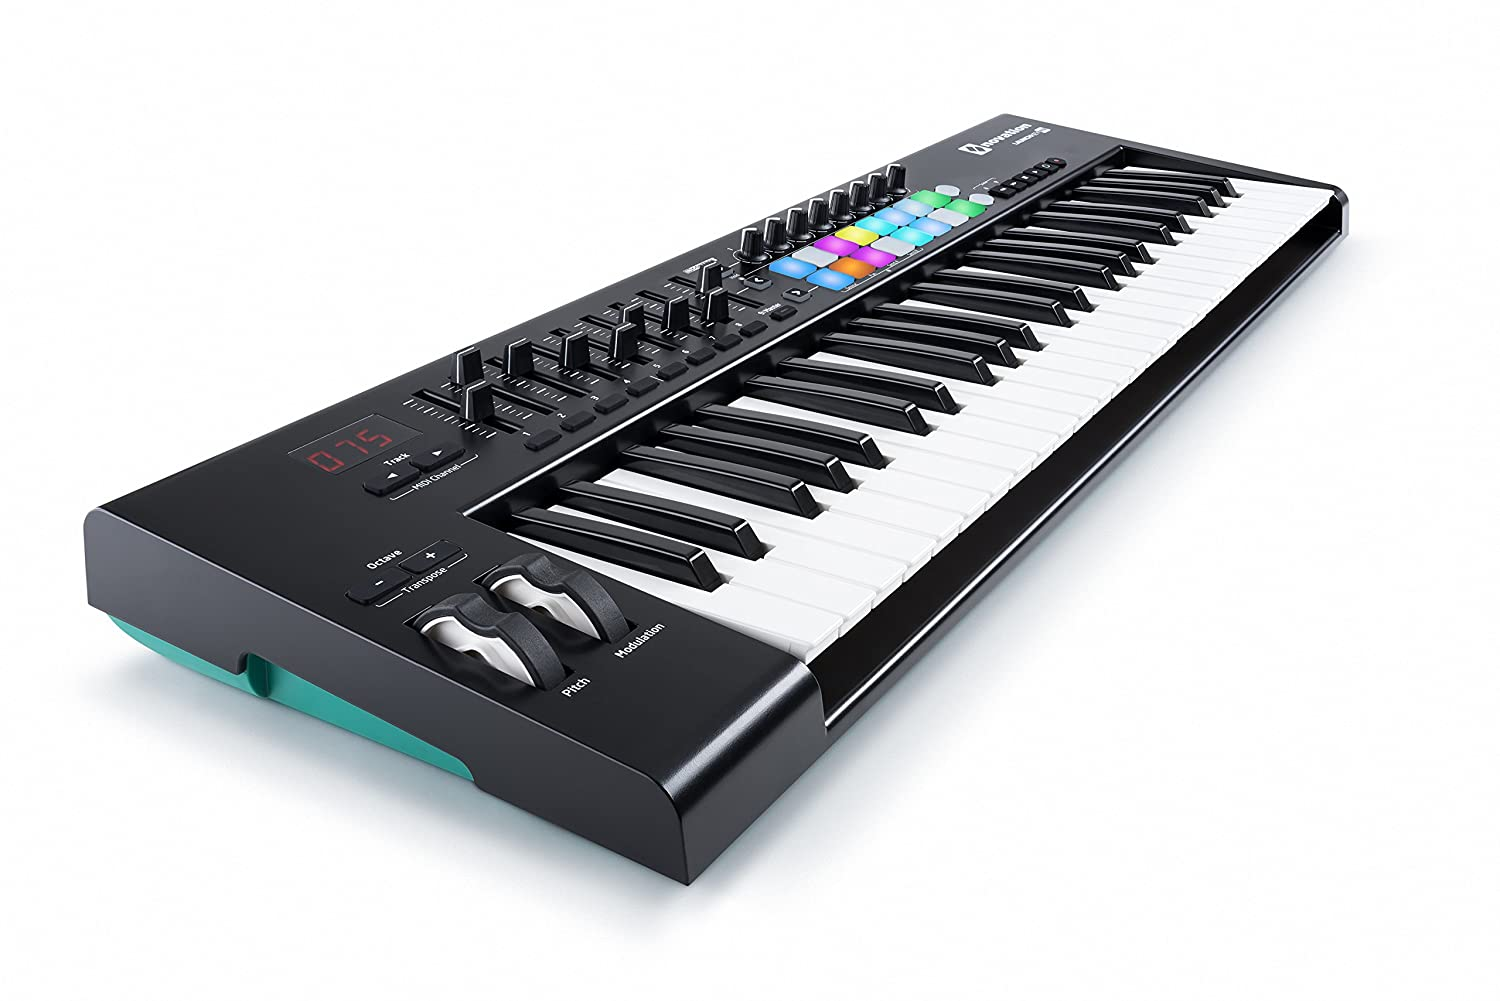 Novation Launchkey 25 USB Keyboard Controller for Ableton Live, 25-Note MK2 Version AMS-LAUNCHKEY-25-MK2